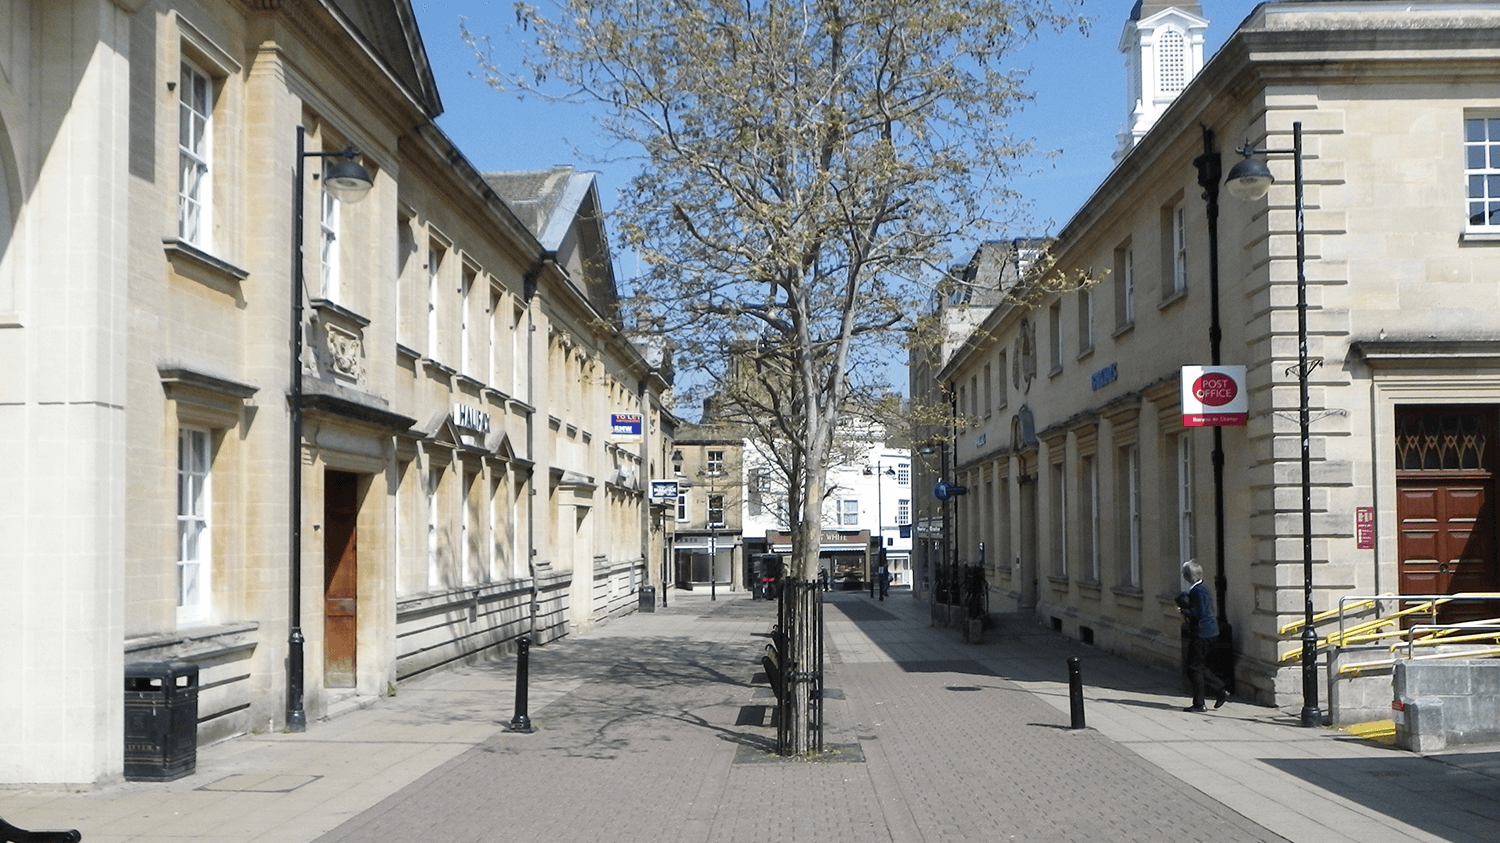 Commercial Buildings in Yeovil, Somerset